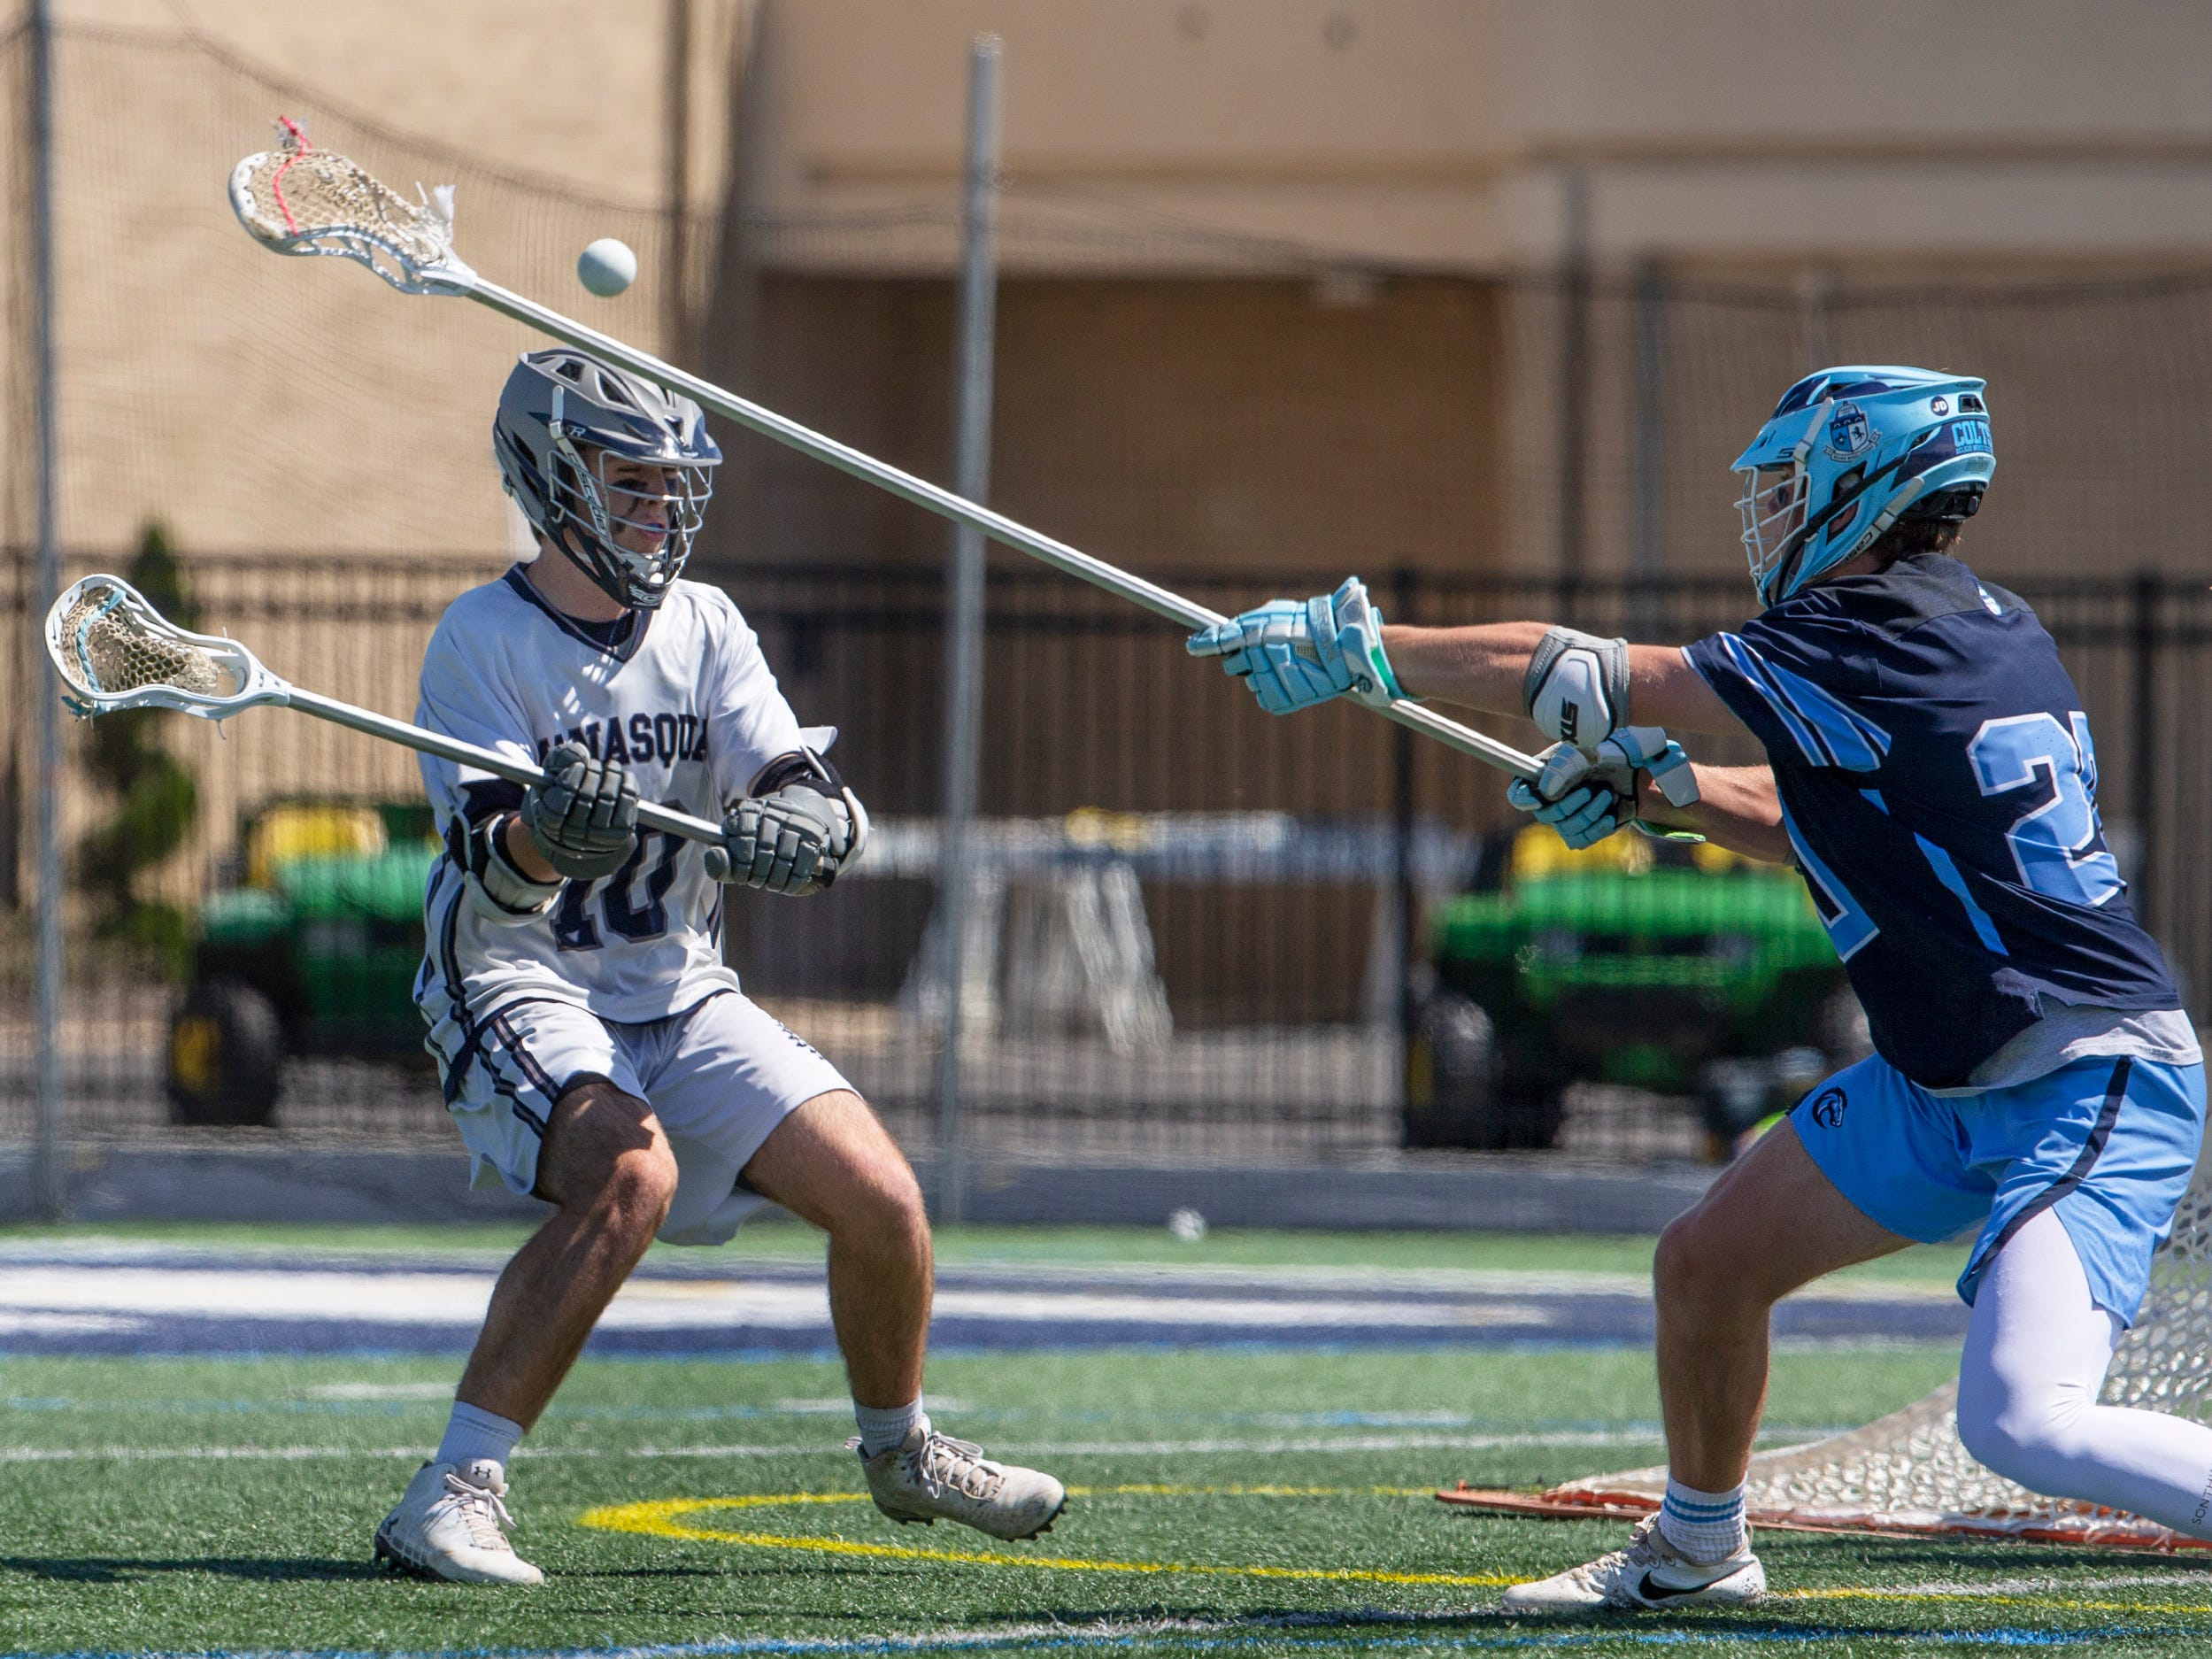 Manasquan Boys  defeat Christian Brothers Academy in Shore Conference Boys  Lacrosse final in West Long Branch, NJ on May 11, 2019.